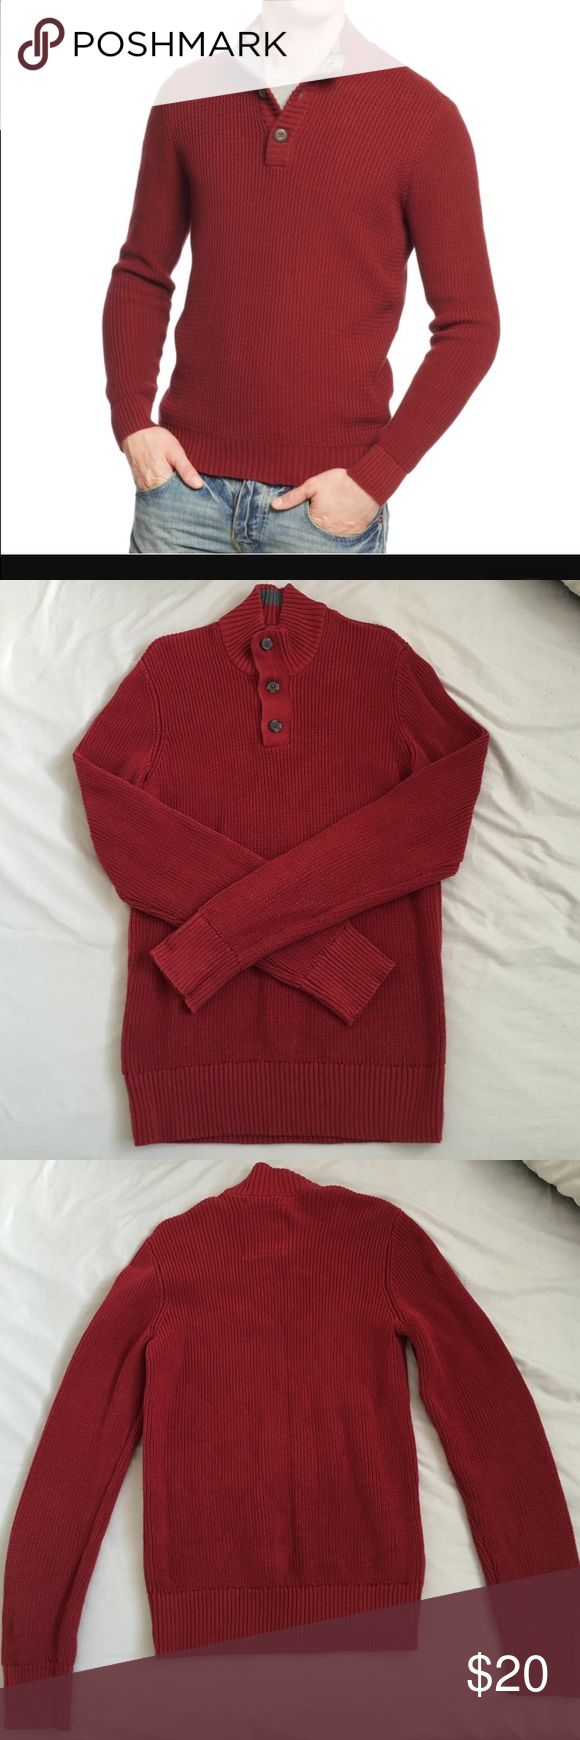 American Rag textured mock neck sweater Only worn once. Like new condition. No stains no flaw. American Rag Sweaters